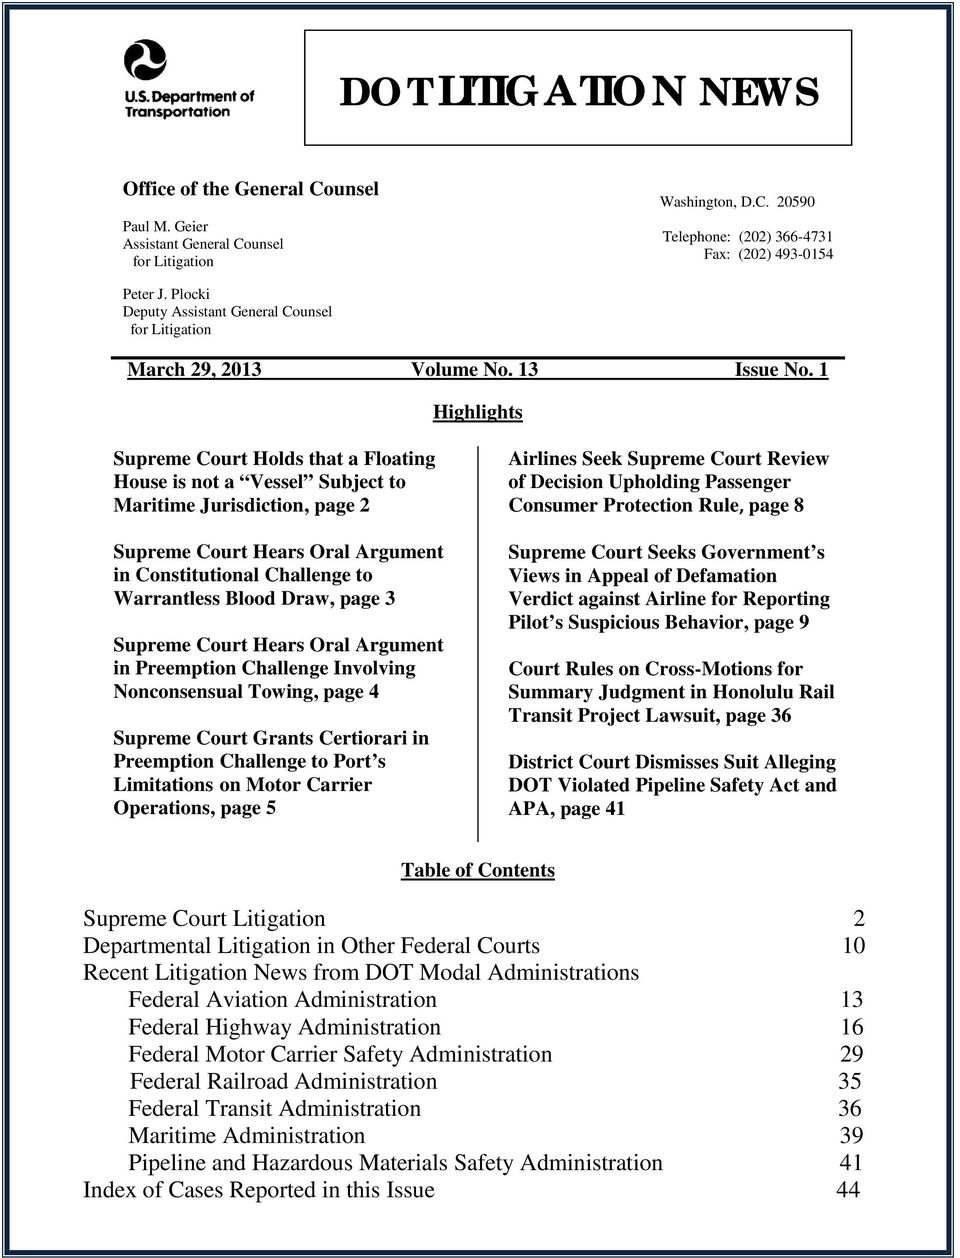 1 Highlights Supreme Court Holds that a Floating House is not a Vessel Subject to Maritime Jurisdiction, page 2 Supreme Court Hears Oral Argument in Constitutional Challenge to Warrantless Blood